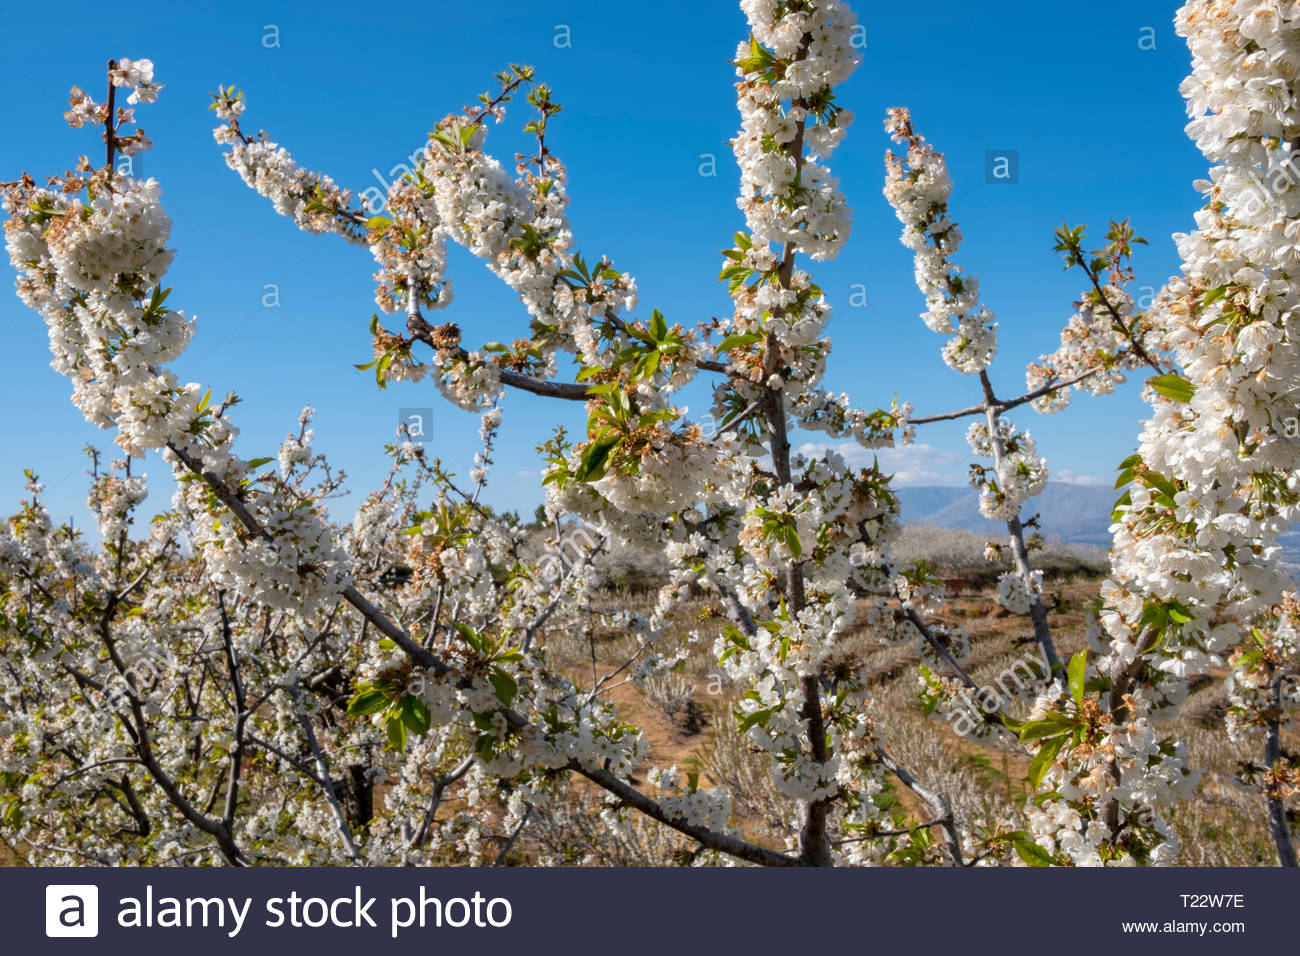 Isolated Cherry Flowers Blossom, Under Blue sky, Fundao, Portugal - Stock Image